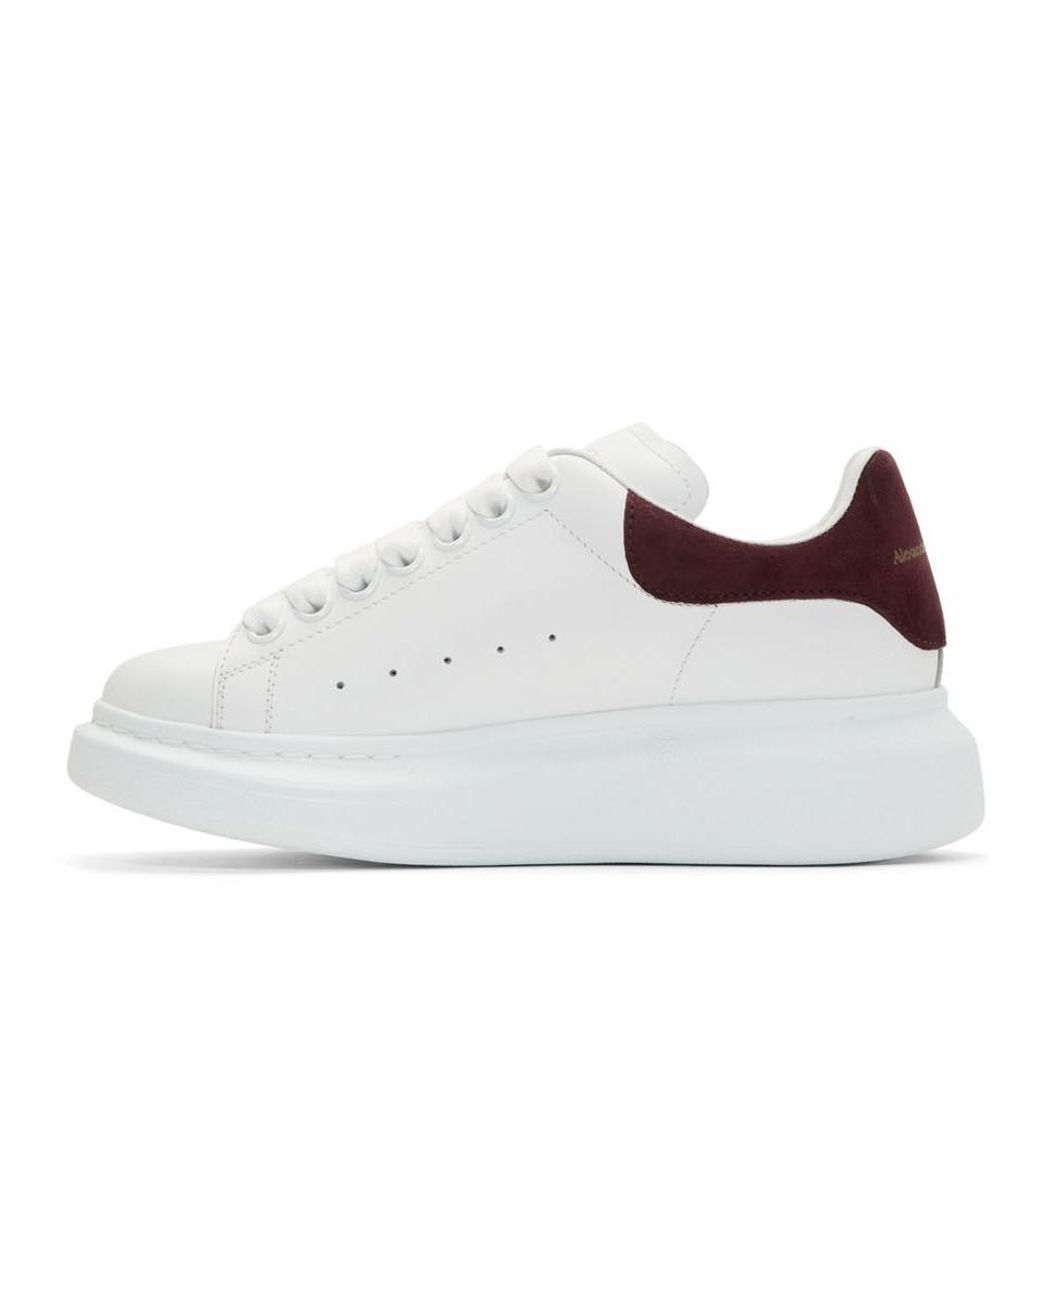 Women's White And Burgundy Oversized Trainers